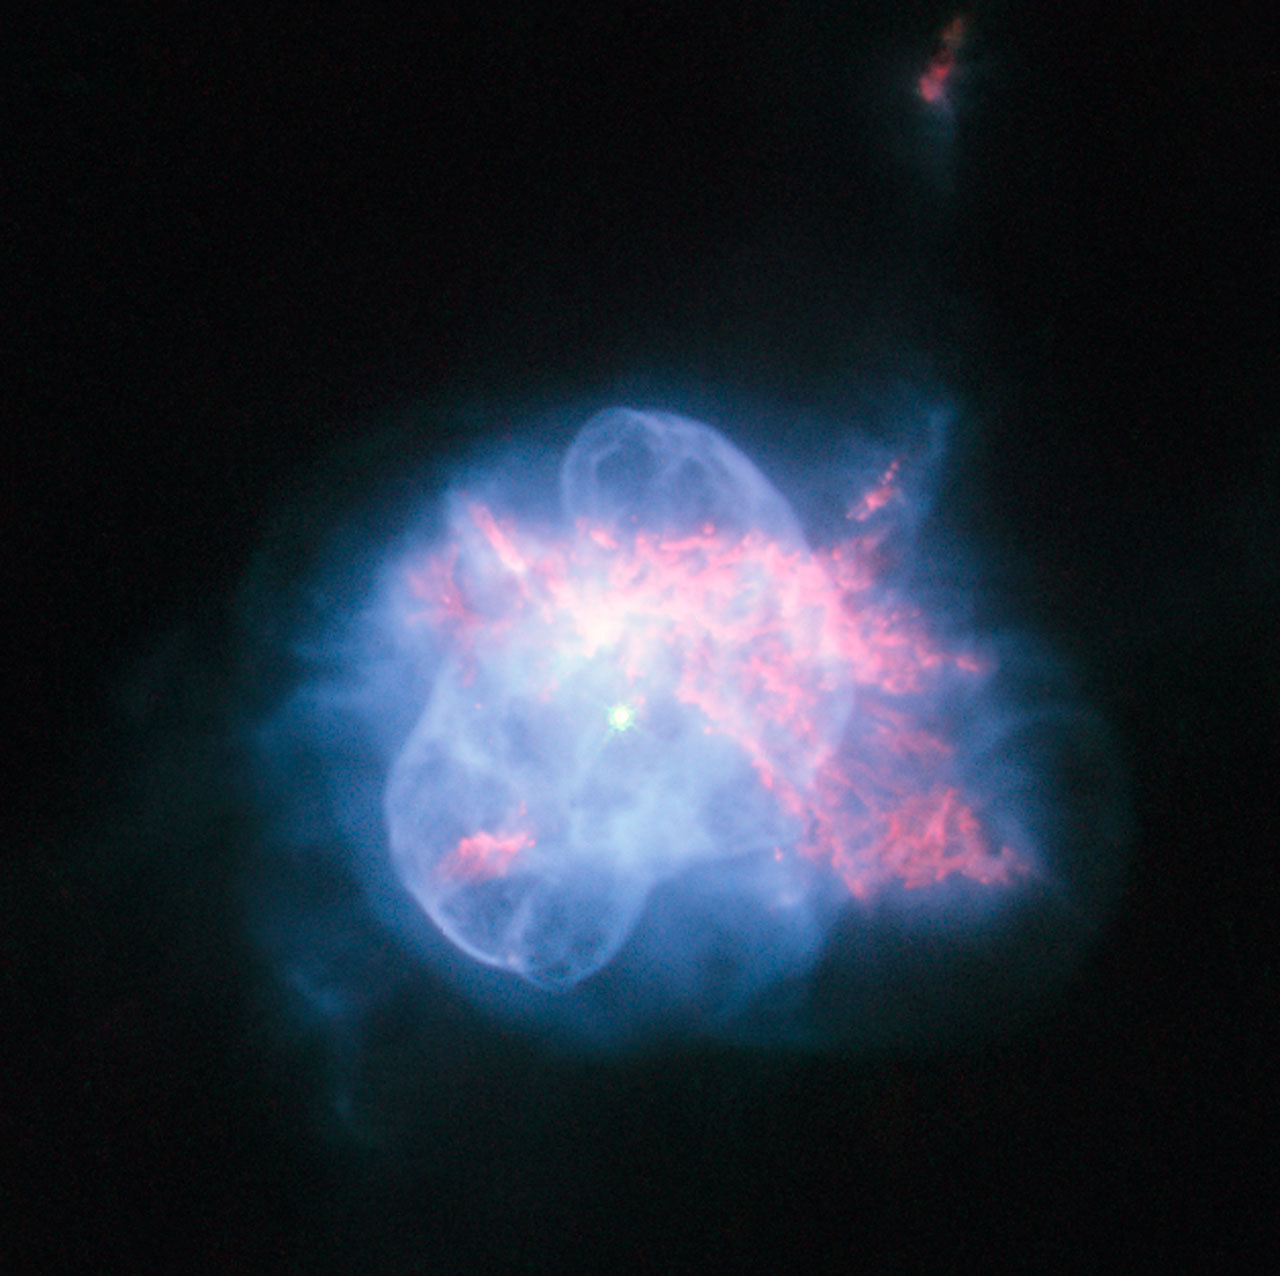 An Odd Planetary Nebula In Hercules The NASA/ESA Hubble Space Telescope has taken a striking high resolution image of the curious planetary nebula NGC 6210. Located about 6500 light-years away, in the constellation of Hercules, NGC 6210 was discovered in 1825 by the German astronomer Friedrich Georg Wilhelm Struve. Although in a small telescope it appears only as a tiny disc, it is fairly bright. Credit: ESA/Hubble and NASA